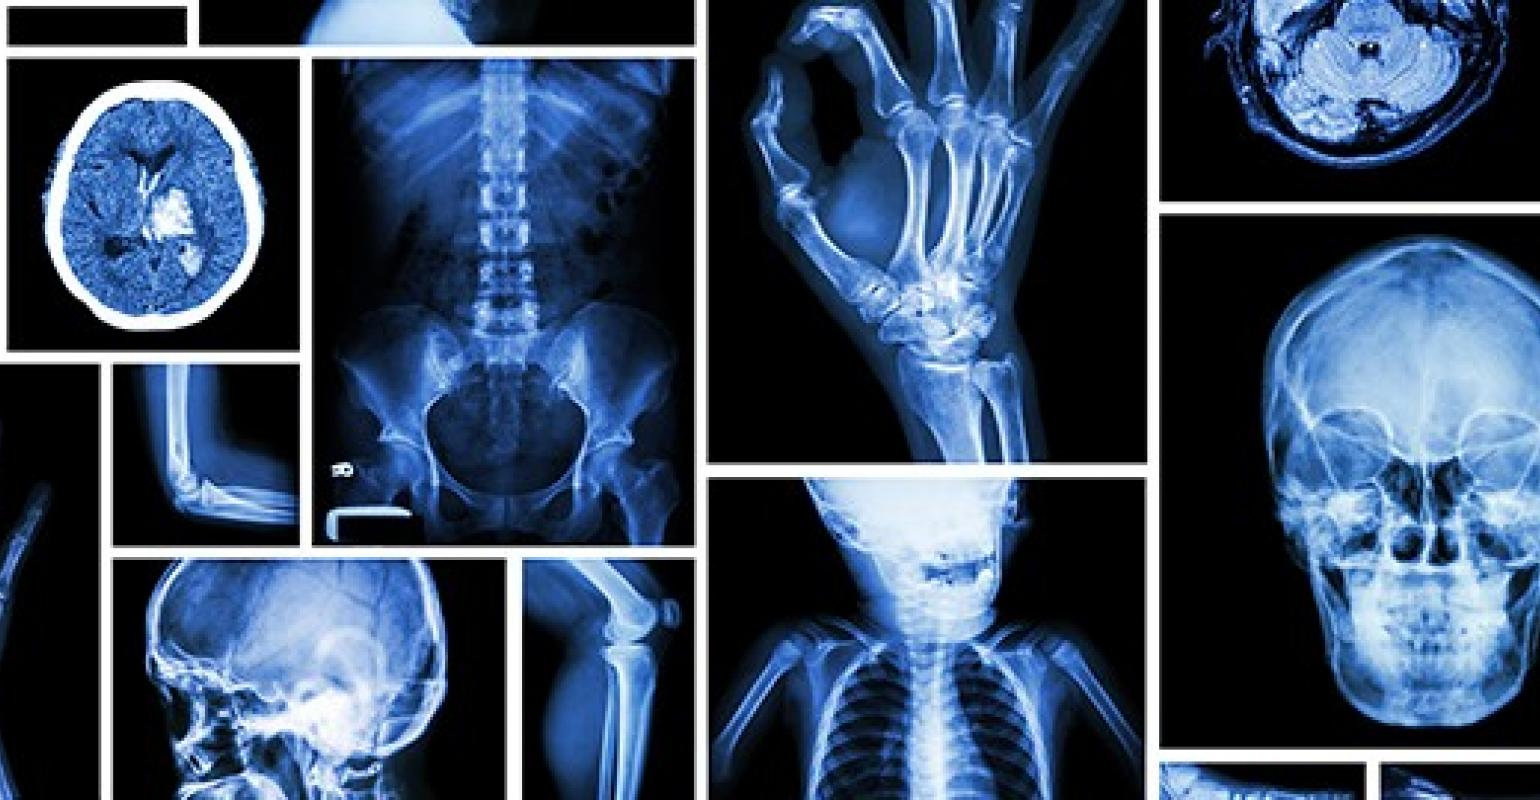 images of general x-ray